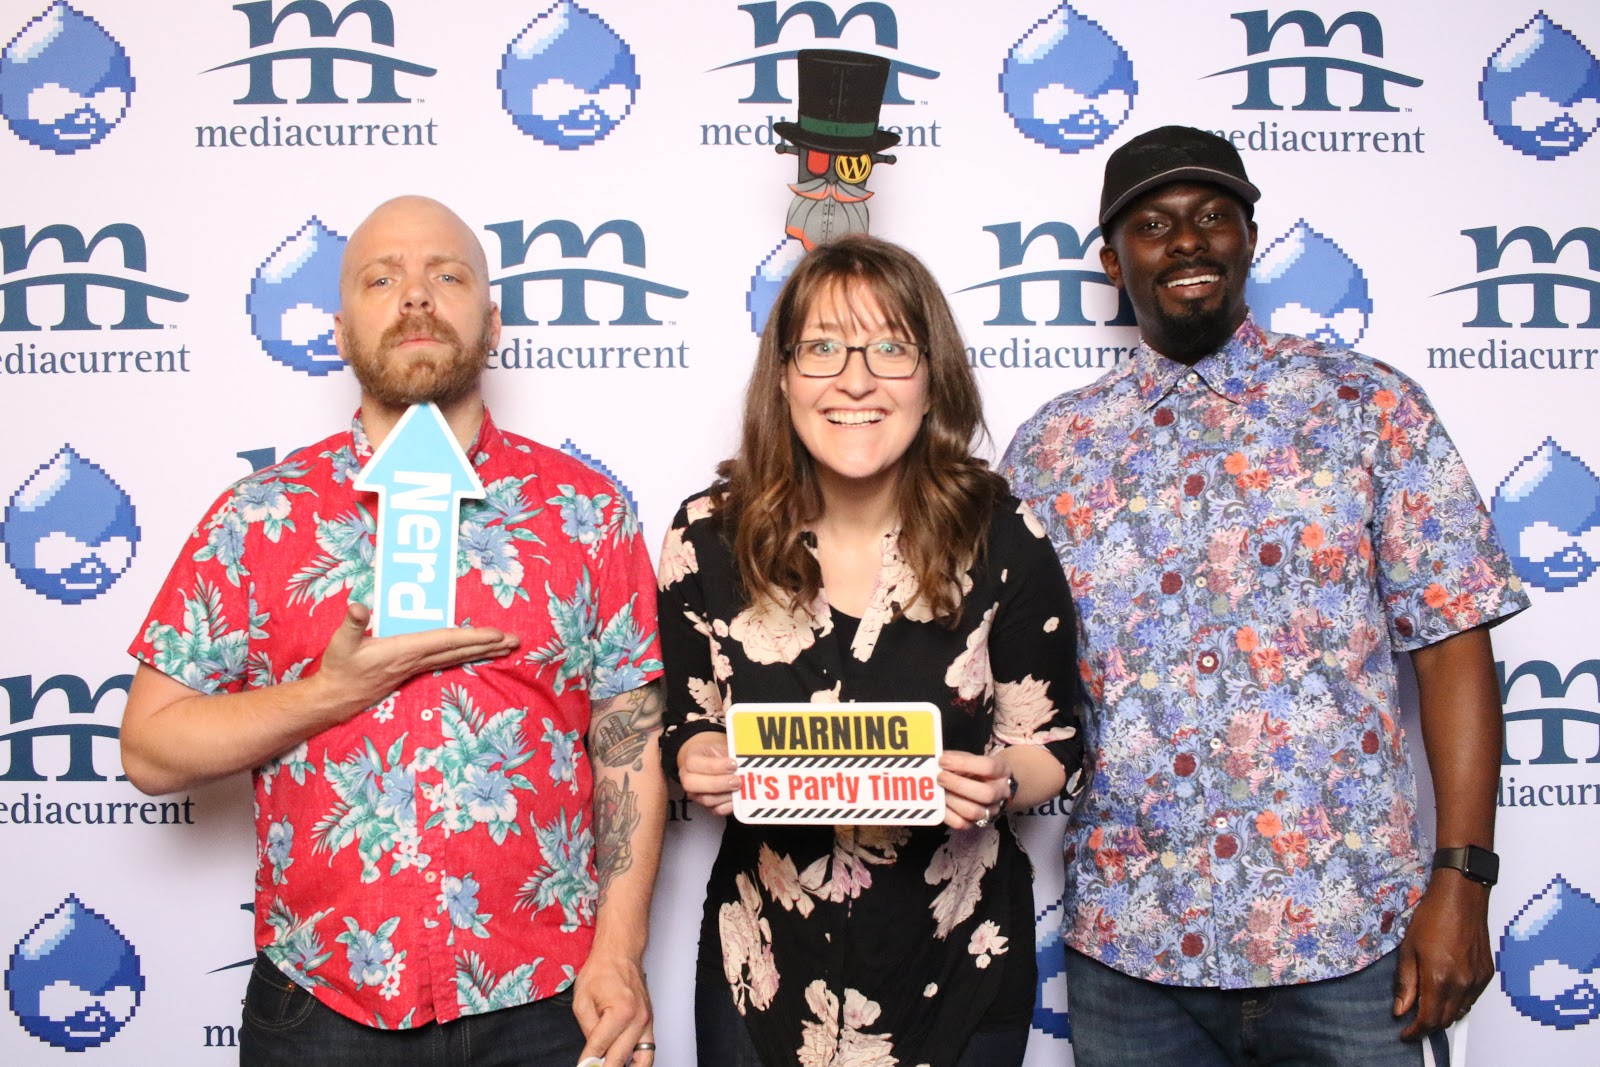 3 Mediacurrent employees posing in with props in a photobooth